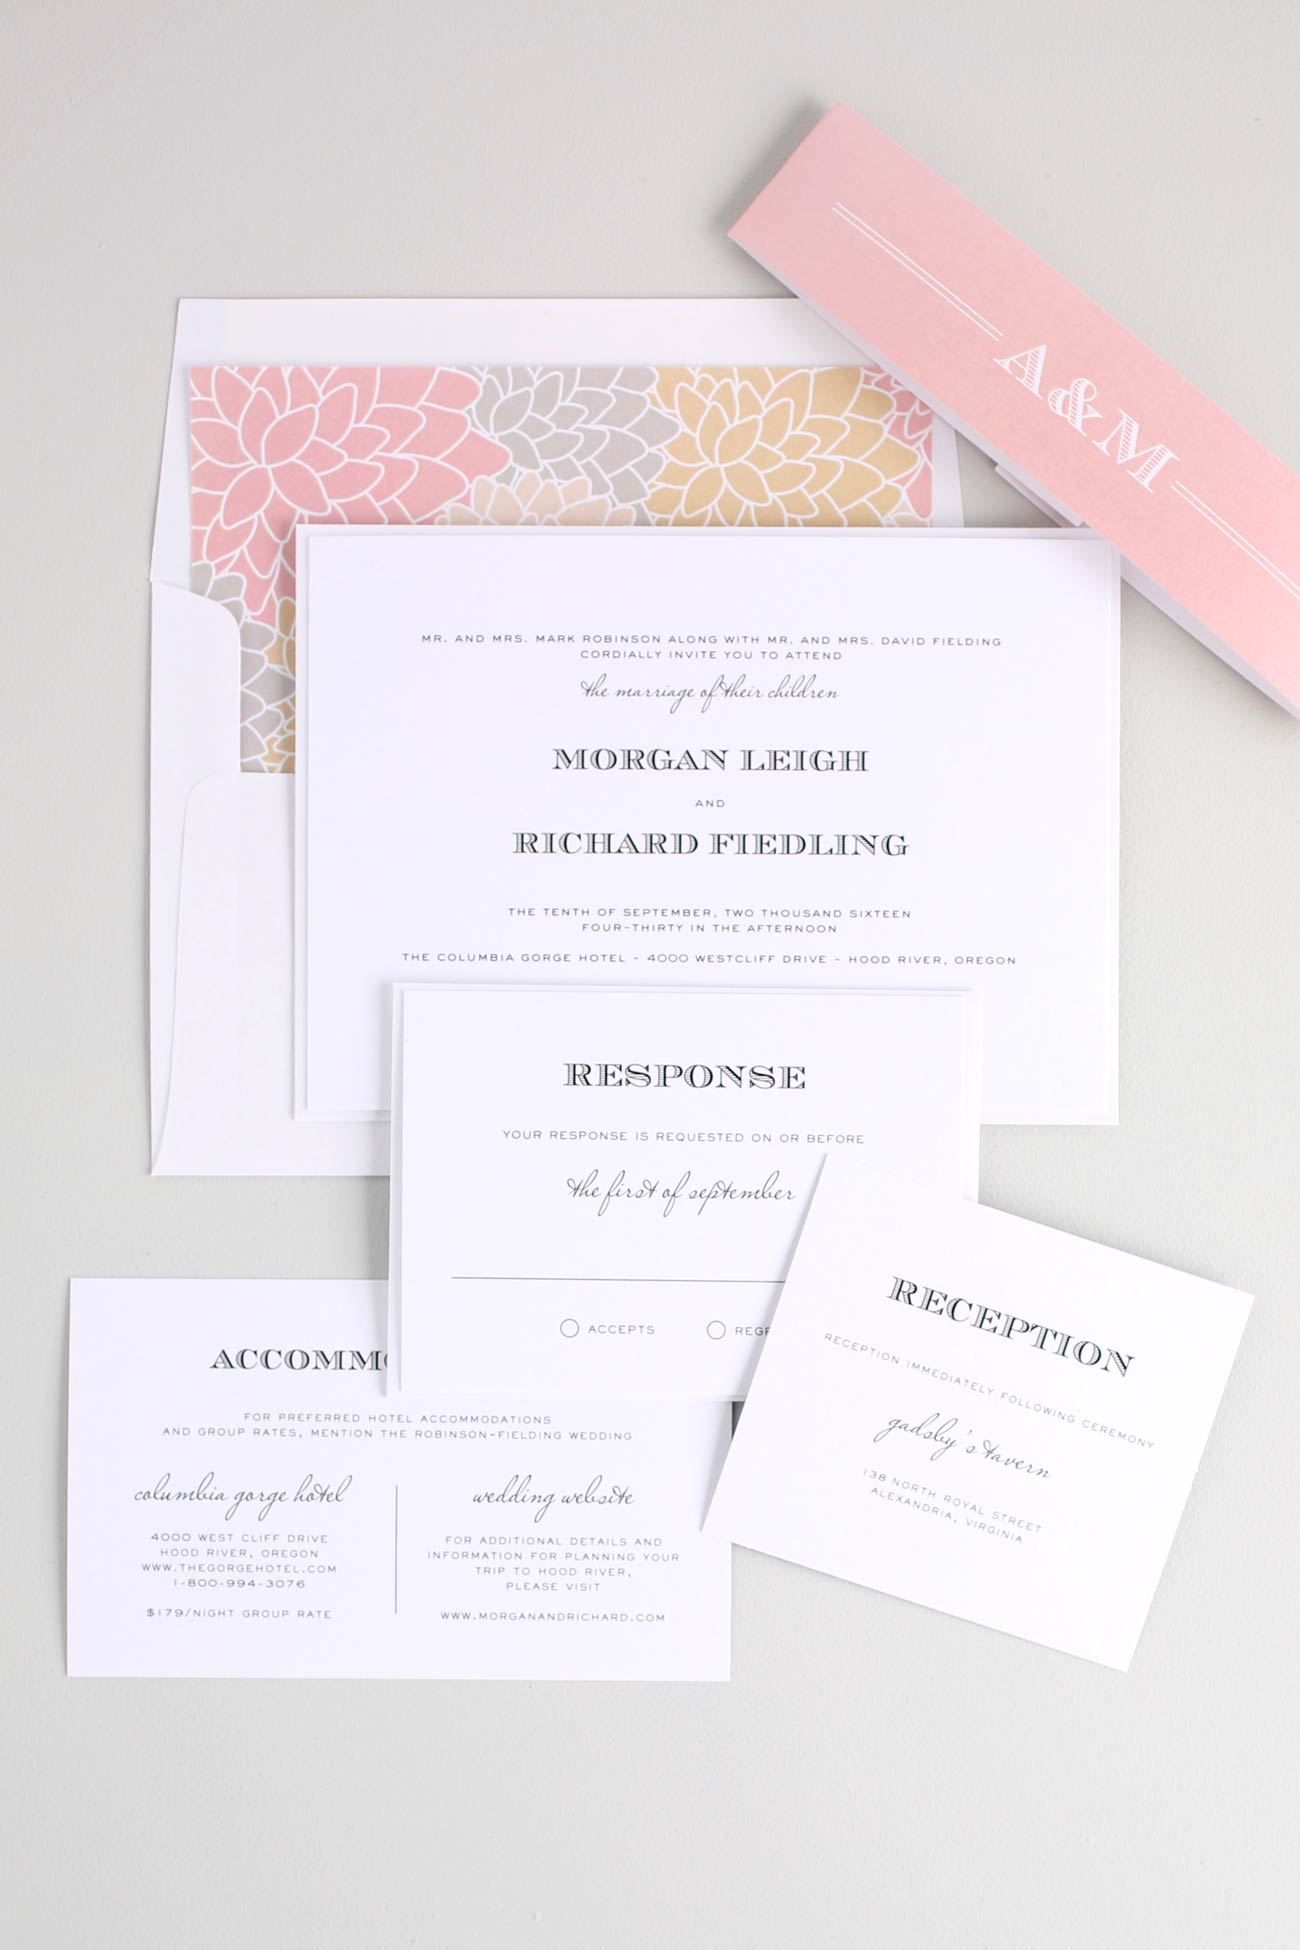 Antique wedding invitations in champagne and blush wedding invitations floral wedding invitations in neutral palette vintage blush and champagne wedding invites with floral pattern stopboris Choice Image